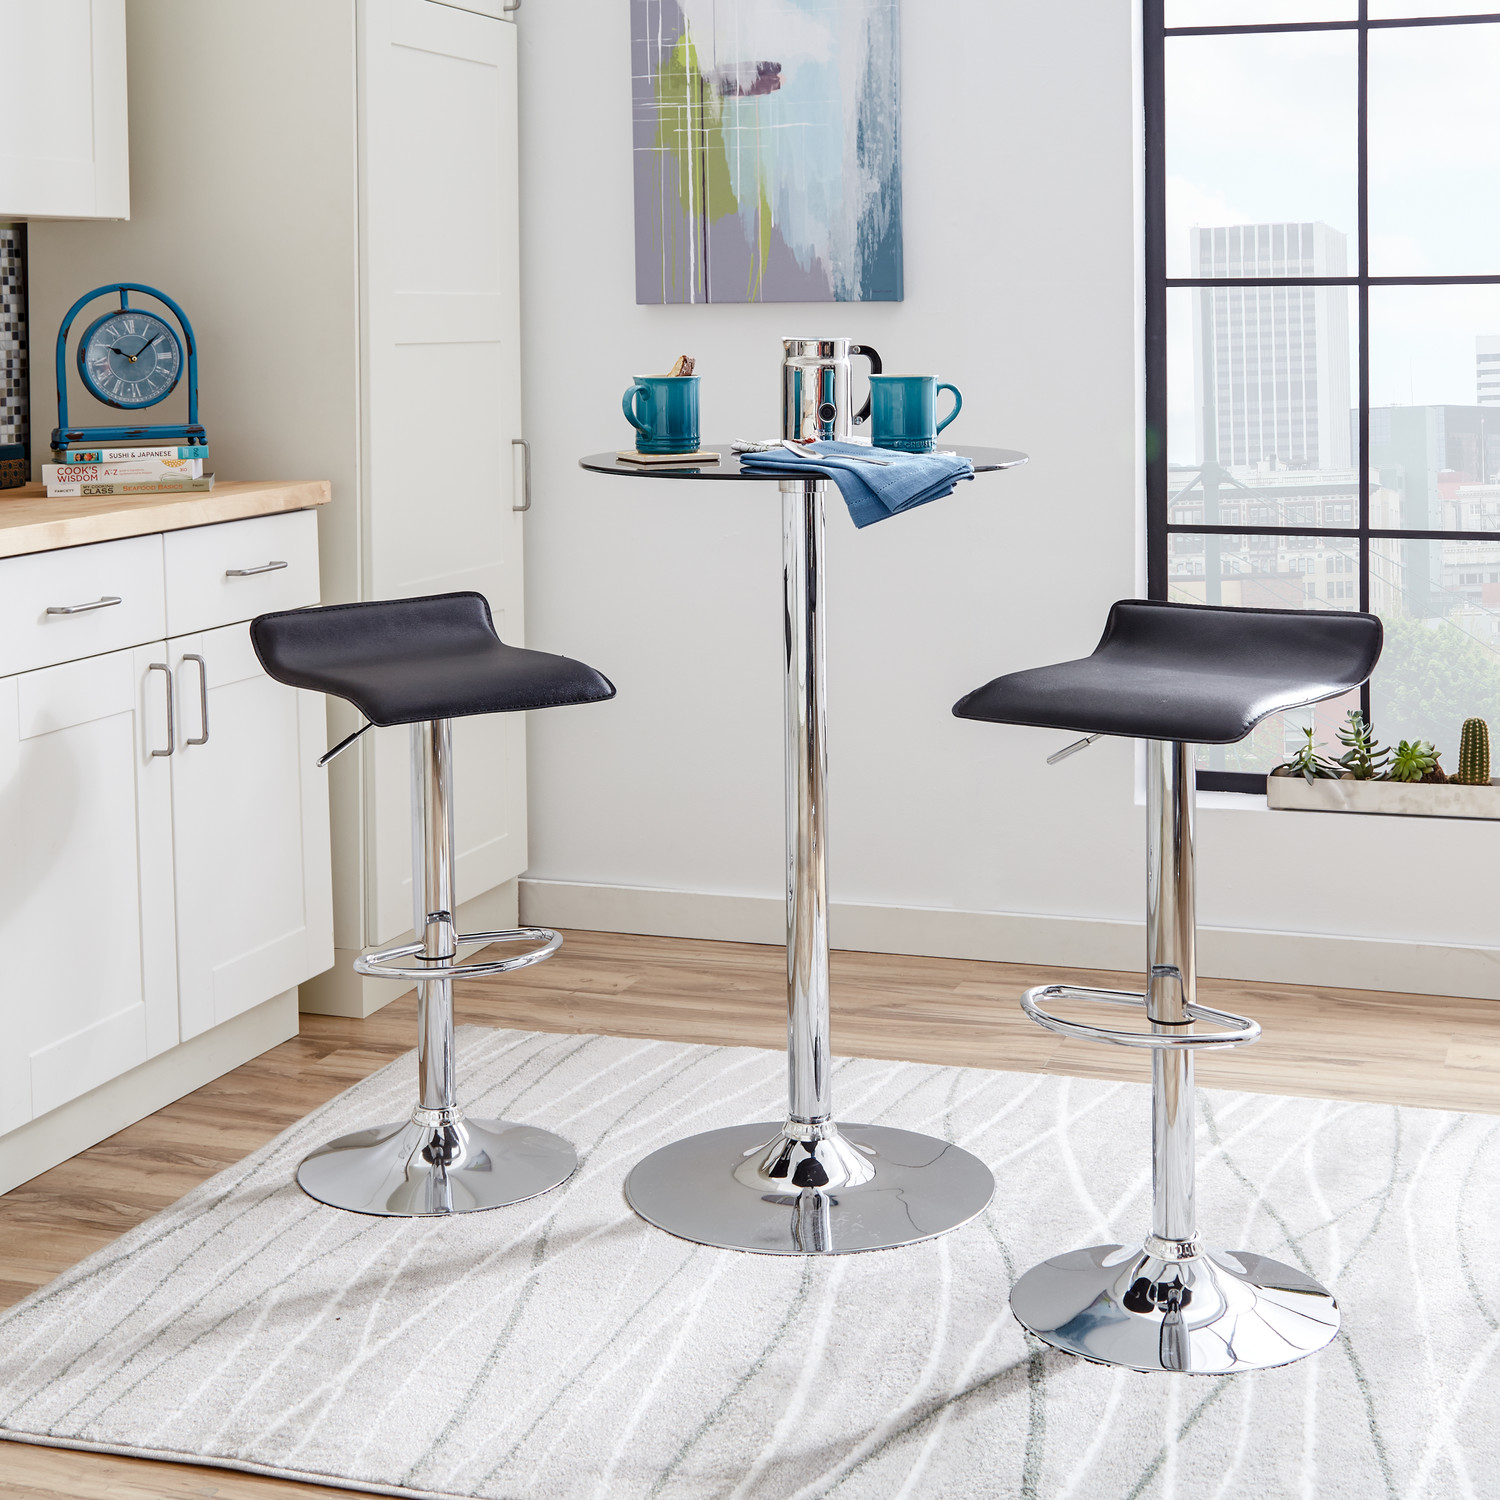 Inspirational Counter Height Bar Stools